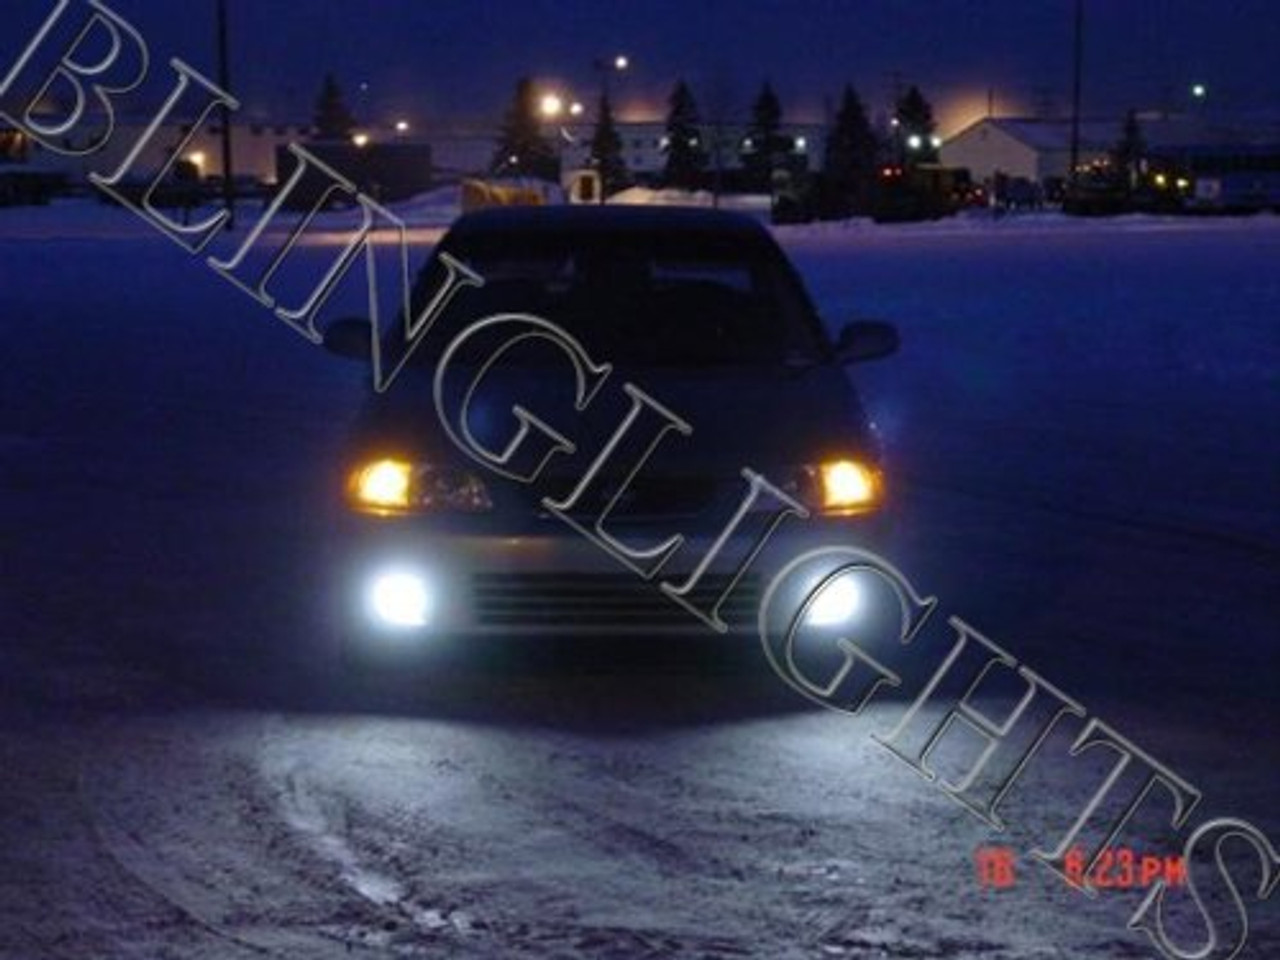 2000 2001 2002 2003 Nissan Sentra Halo Fog Lamps Angel Eye Driving Lights Foglamps Foglights Kit